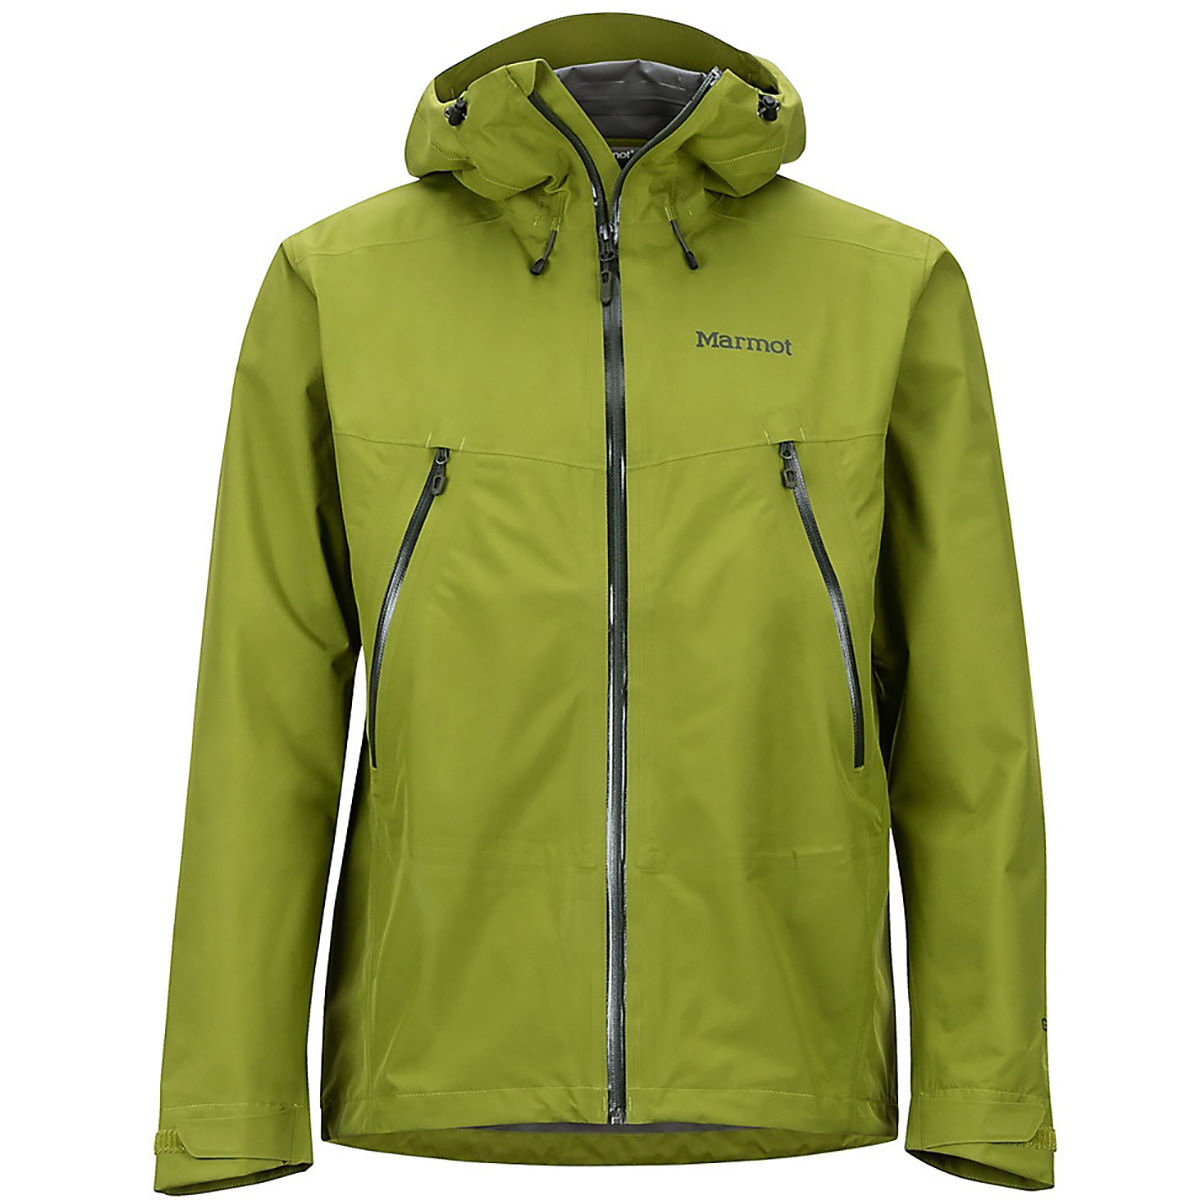 Marmot Marmot Knife Edge Jacket   Jackets